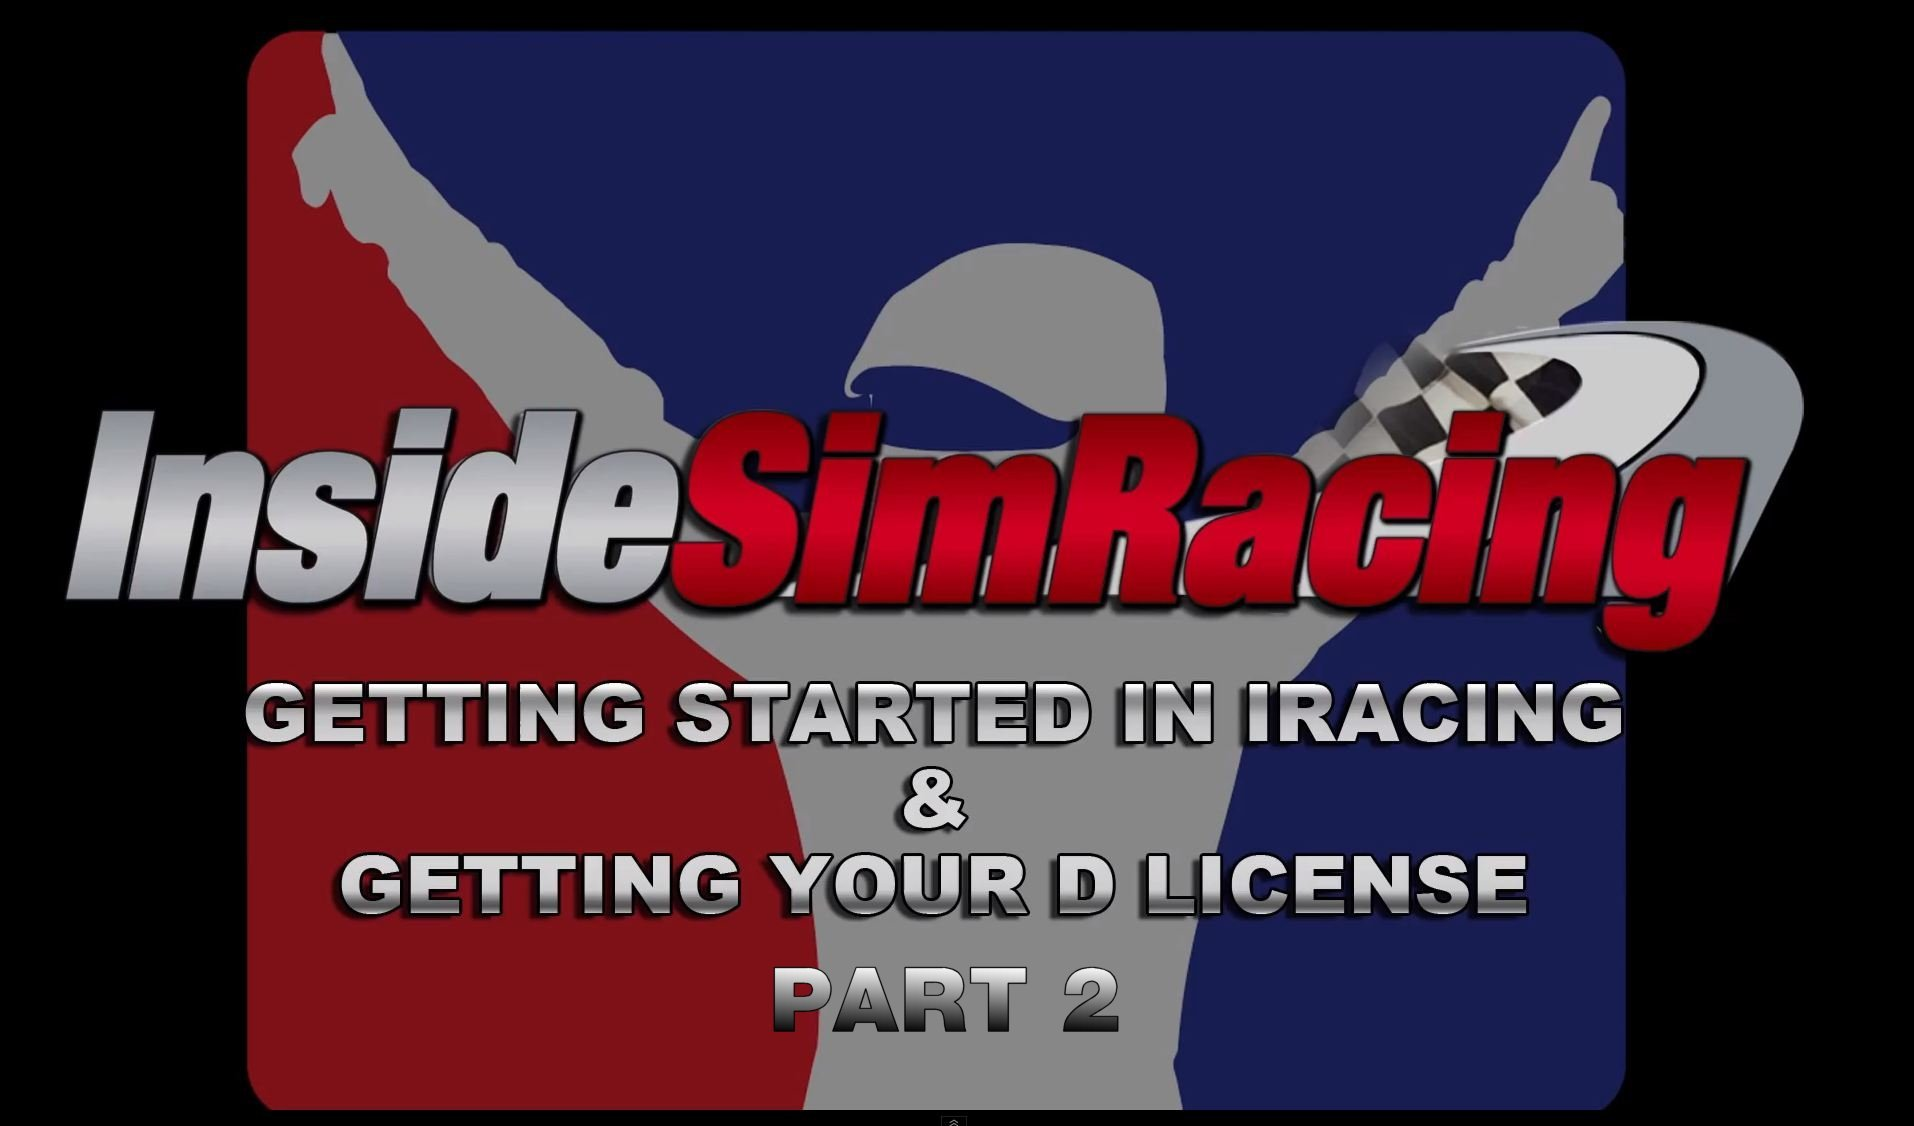 iRacing Tutorial – Getting Started and Getting Your D License Part 2